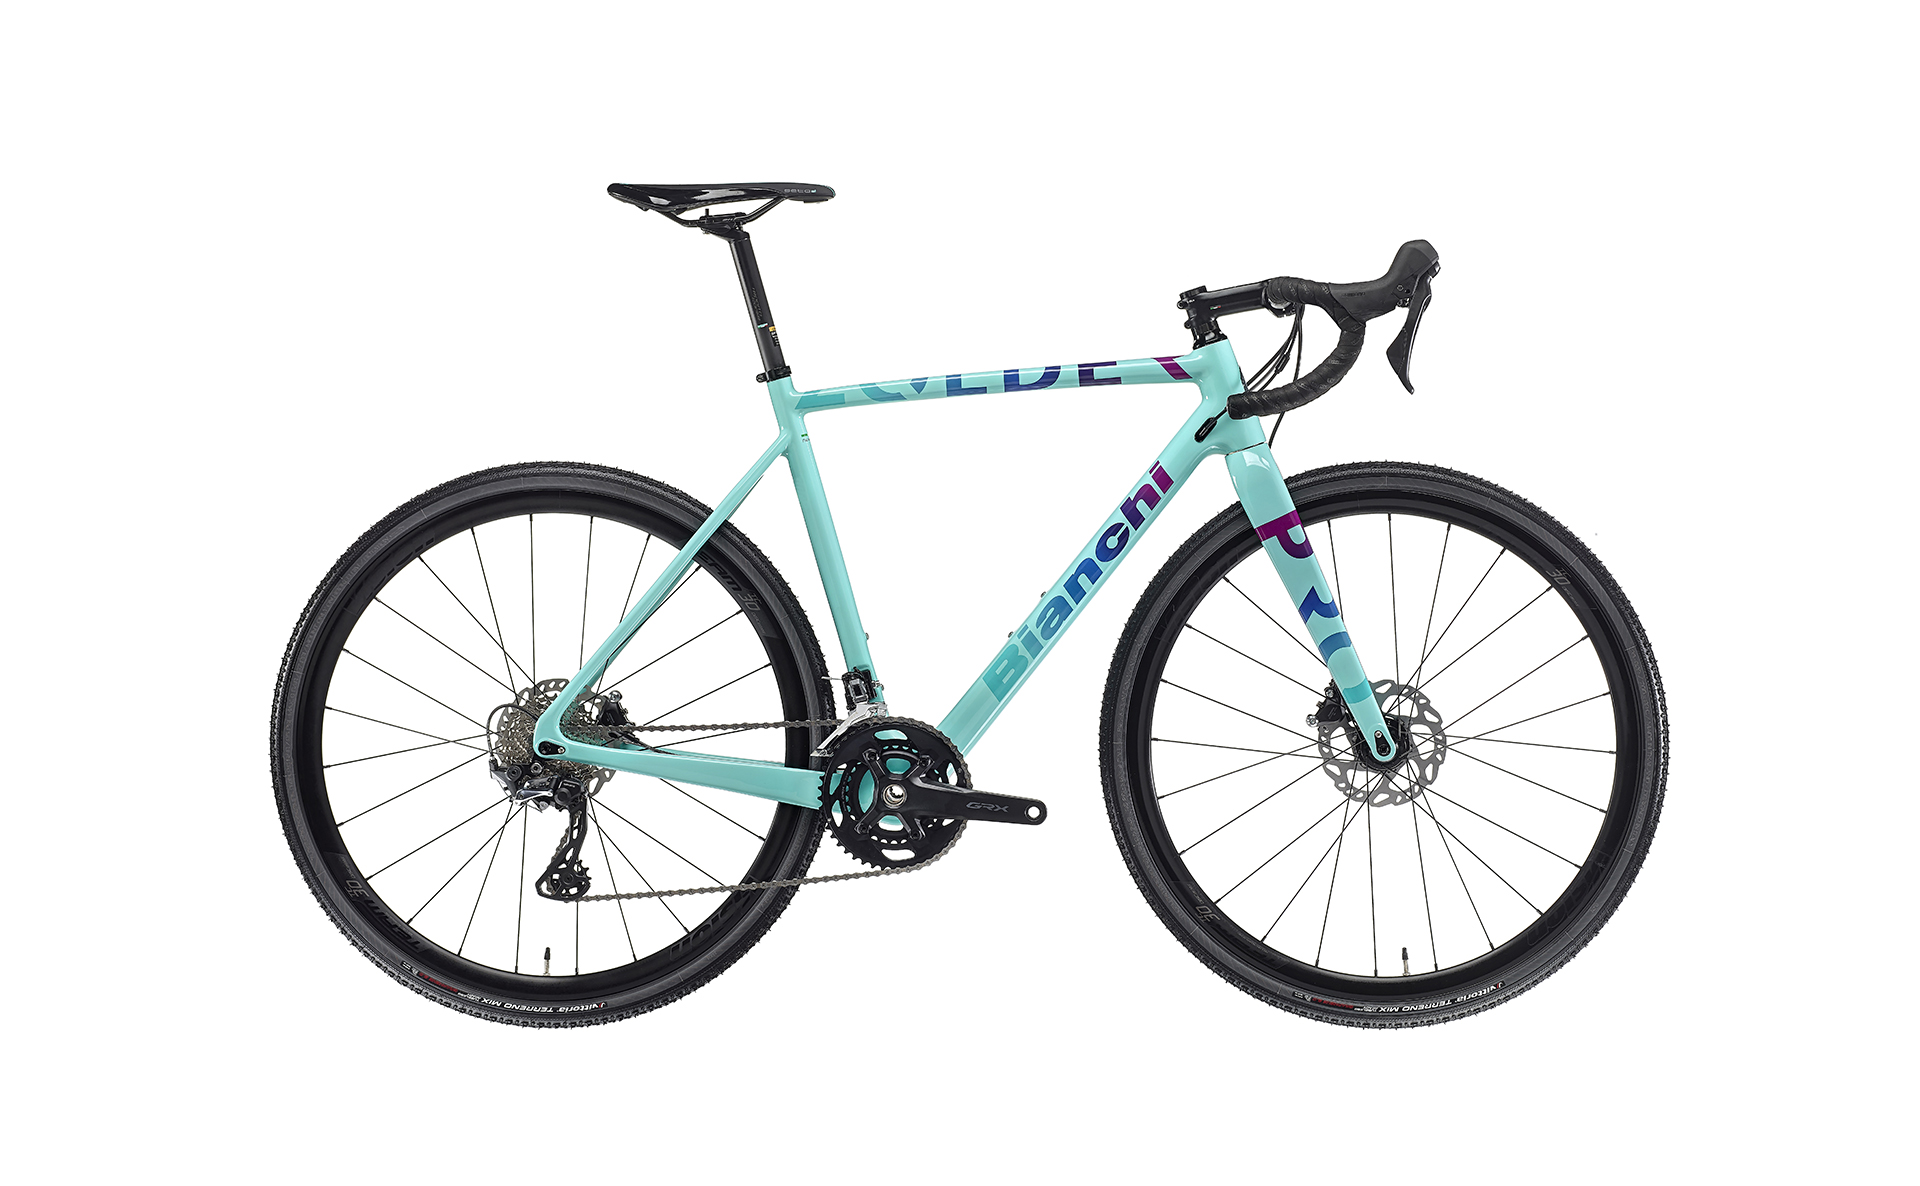 green bianchi cx racing bike